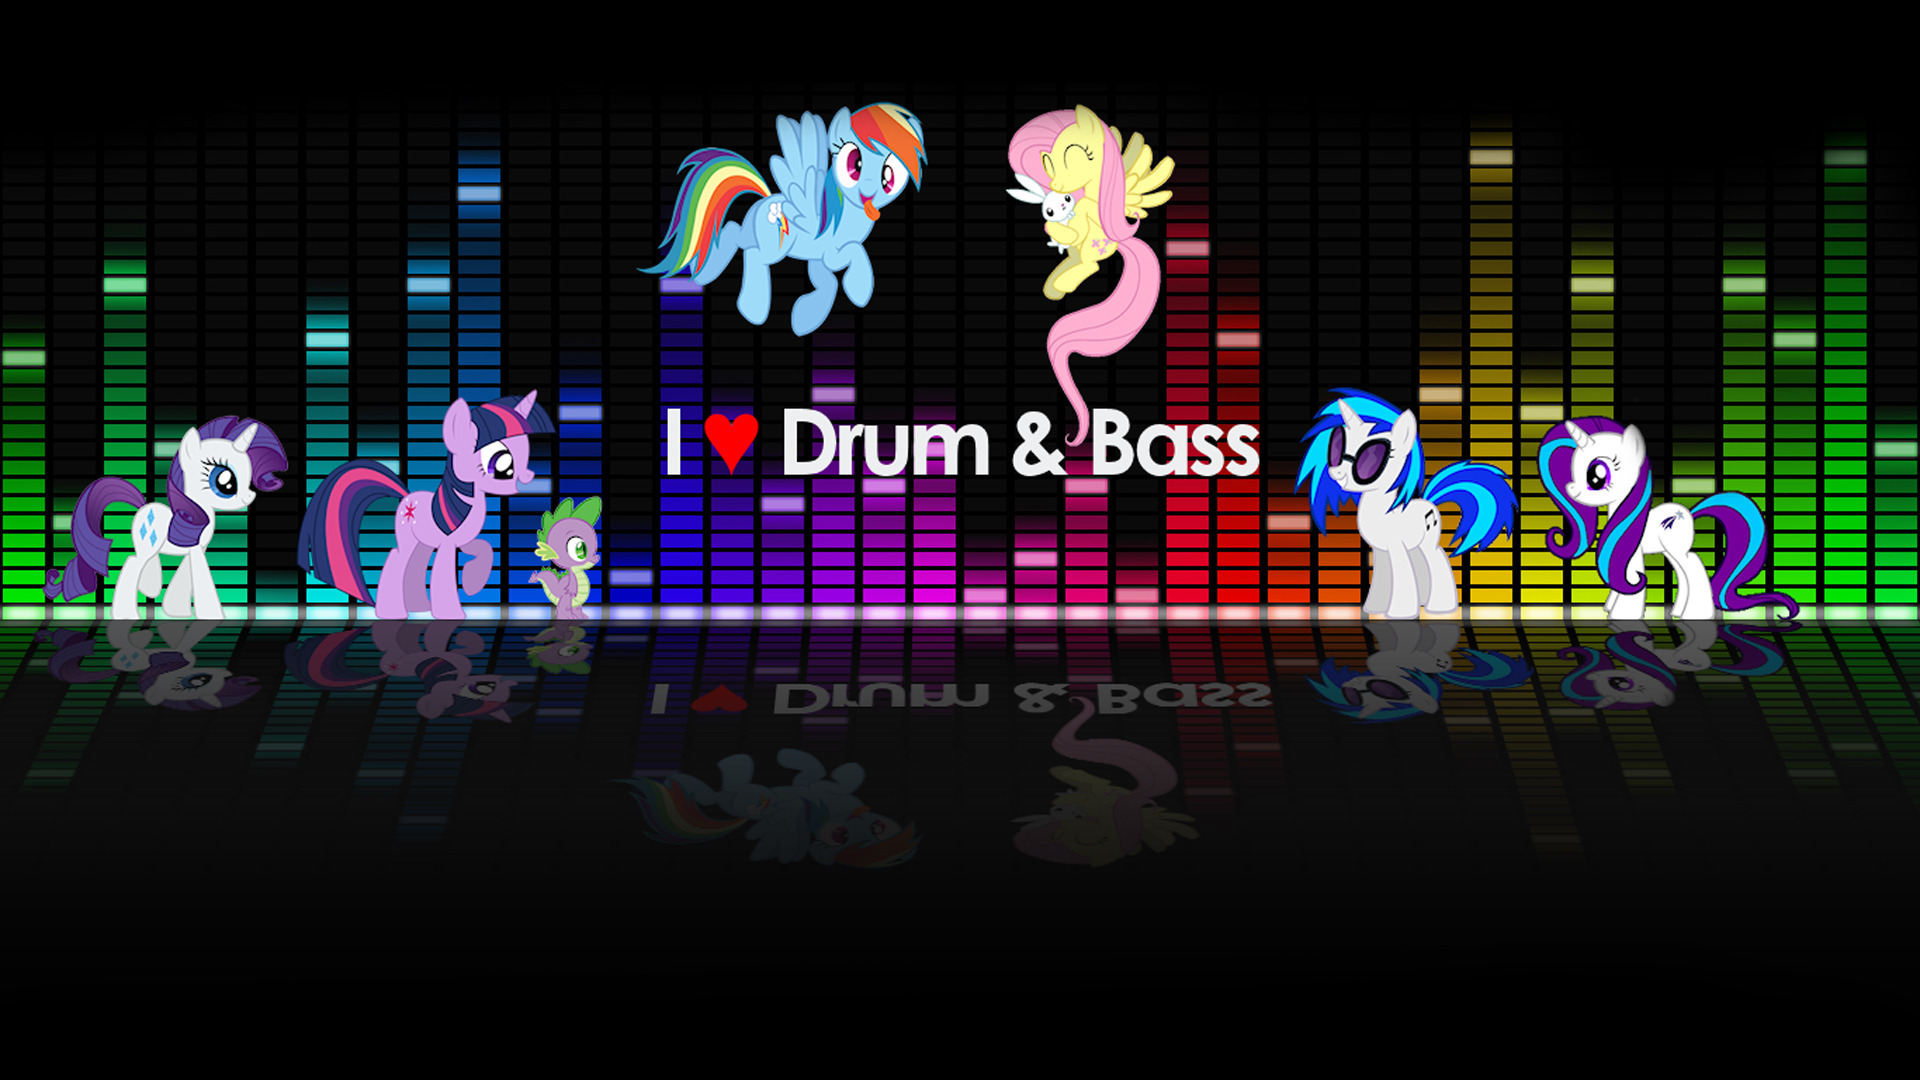 I Love Drum & Bass wallpaper 1920x1080